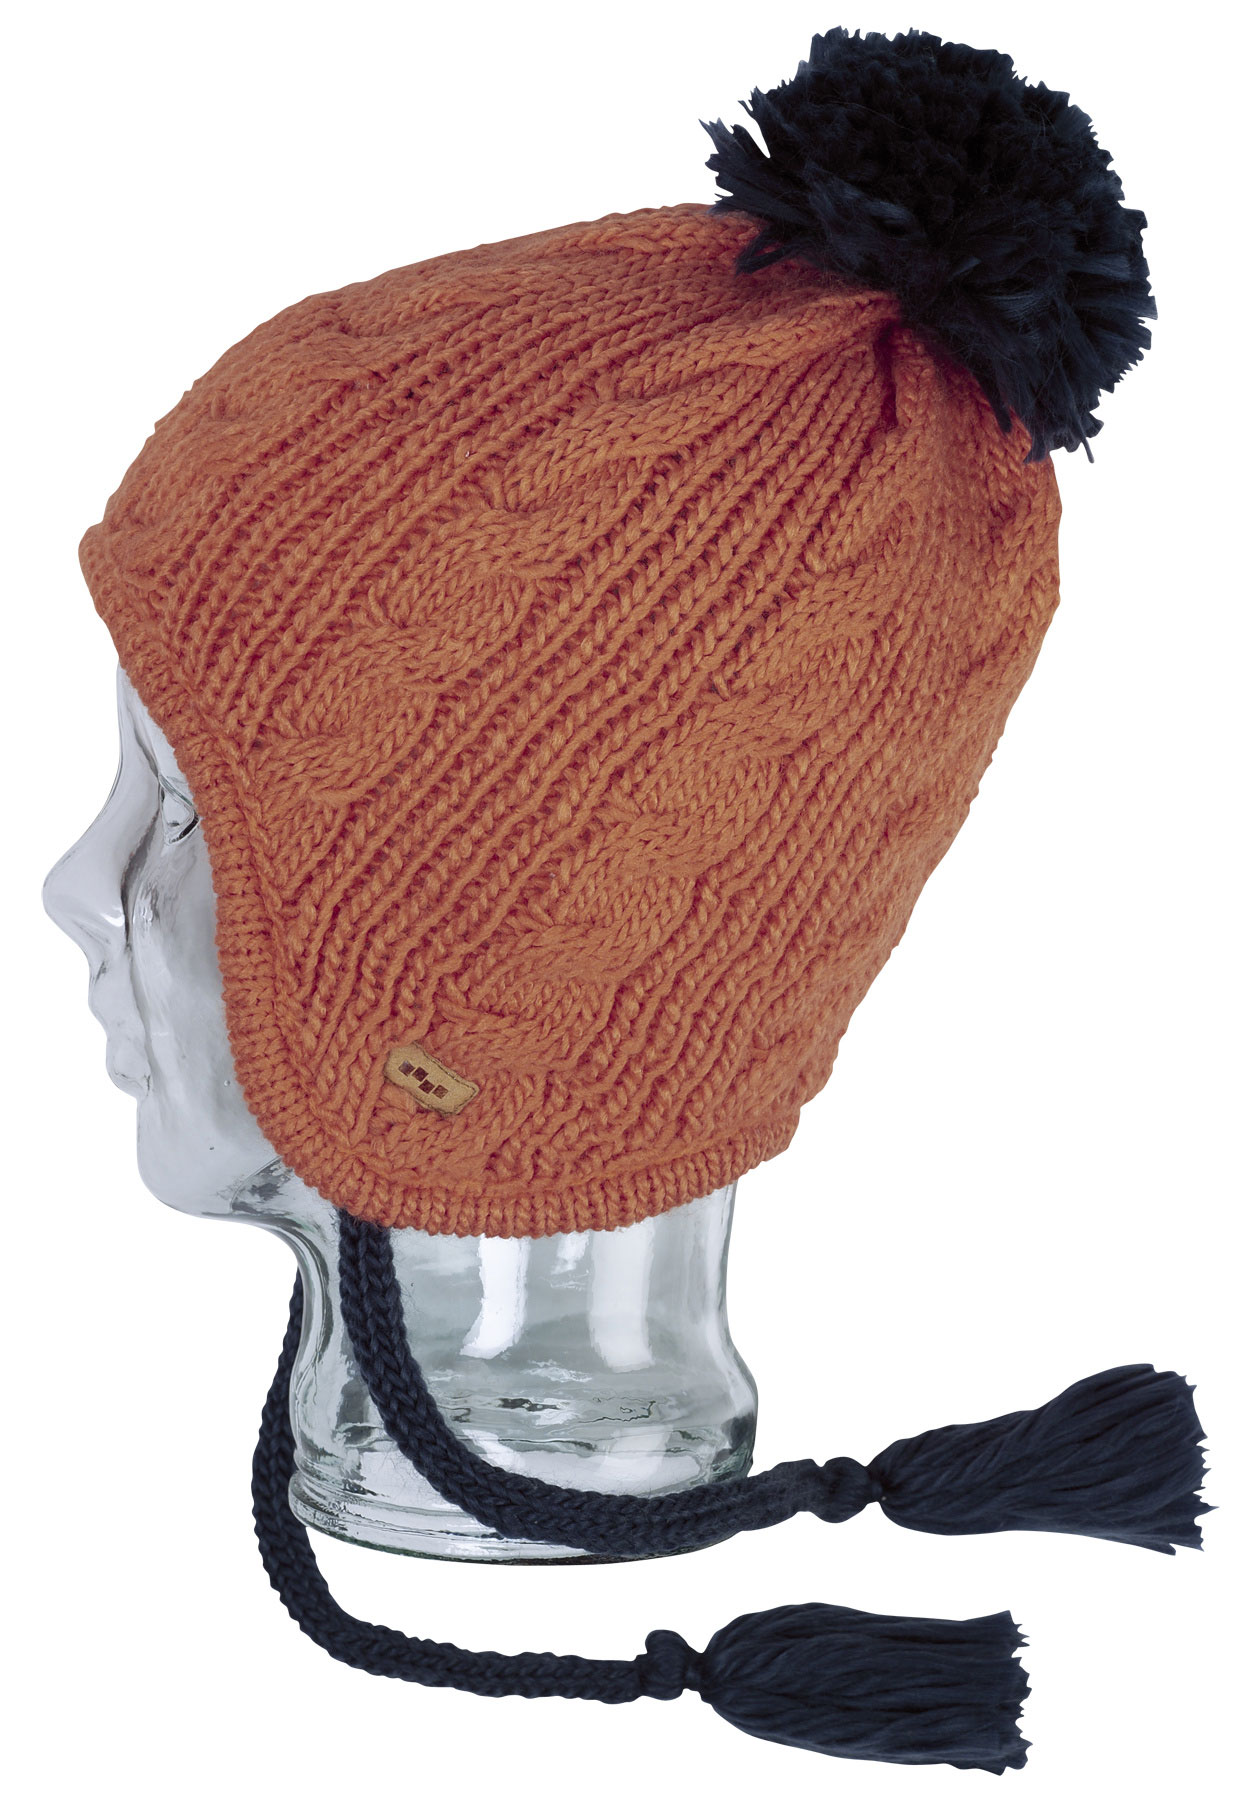 Surf Having a warm head has never looked so good. This adorable Foursquare Flip Flop Beanie will keep you toasty on the slopes, and keep you looking stylish no matter where you decide to pull it on. The fuzzy lining is made to keep ears fully covered and insulated, and the tassels can be tied up or left hanging loose. Keep yourself looking turned on all winter long with the help of Foursquare, your trusted name in winter wear. - $9.95